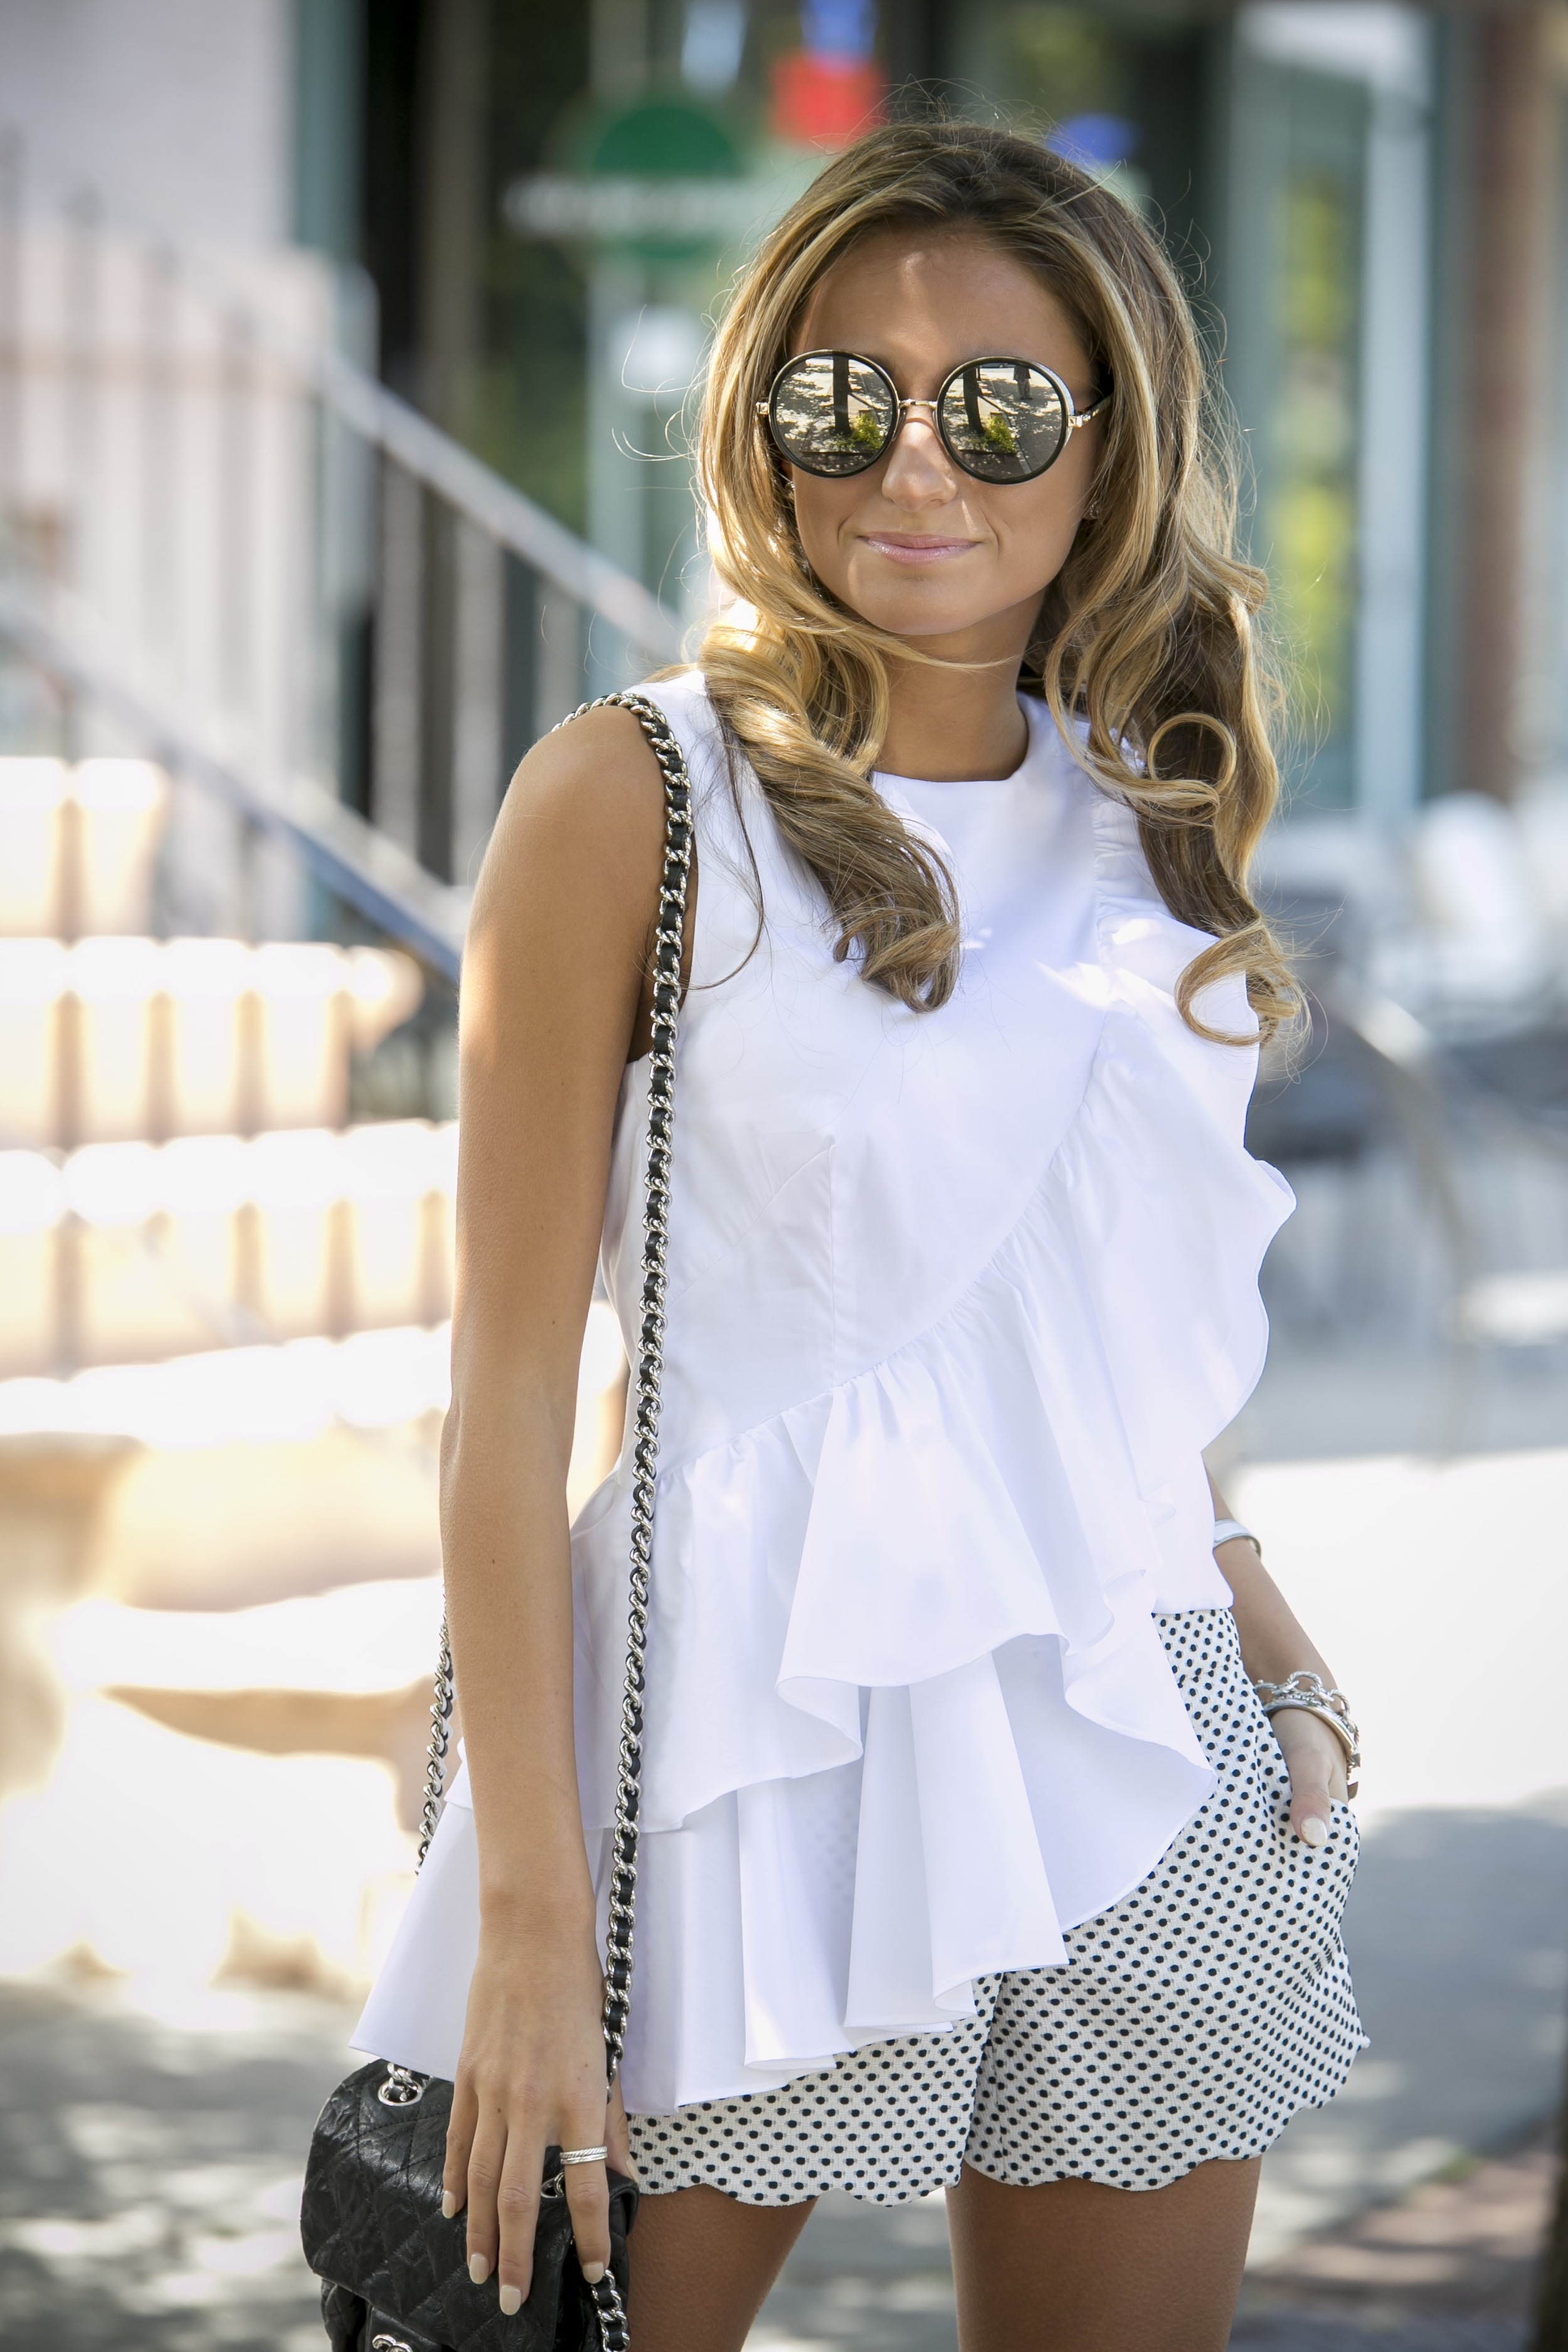 Jimmy Choo sunglasses on fashion blogger North of Manhattan seen wearing a ruffled top exclusive to Intermix